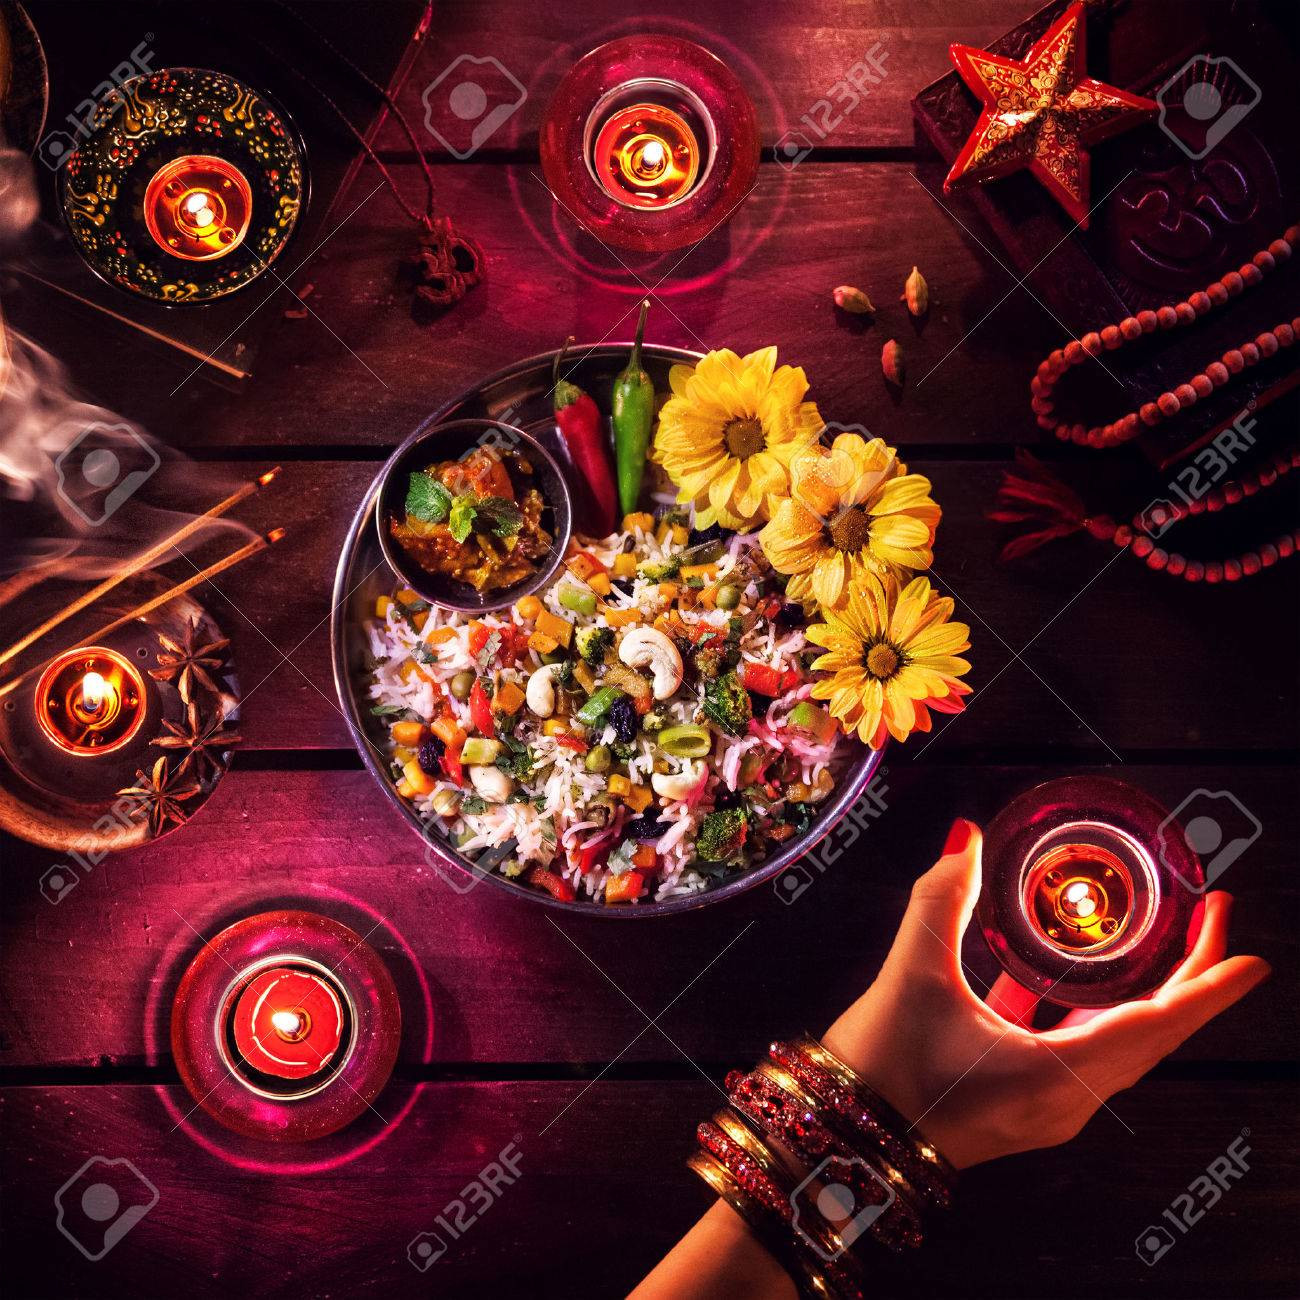 Vegetarian biryani, candles, incense and religious symbols at Diwali celebration on the table Stock Photo - 45388769